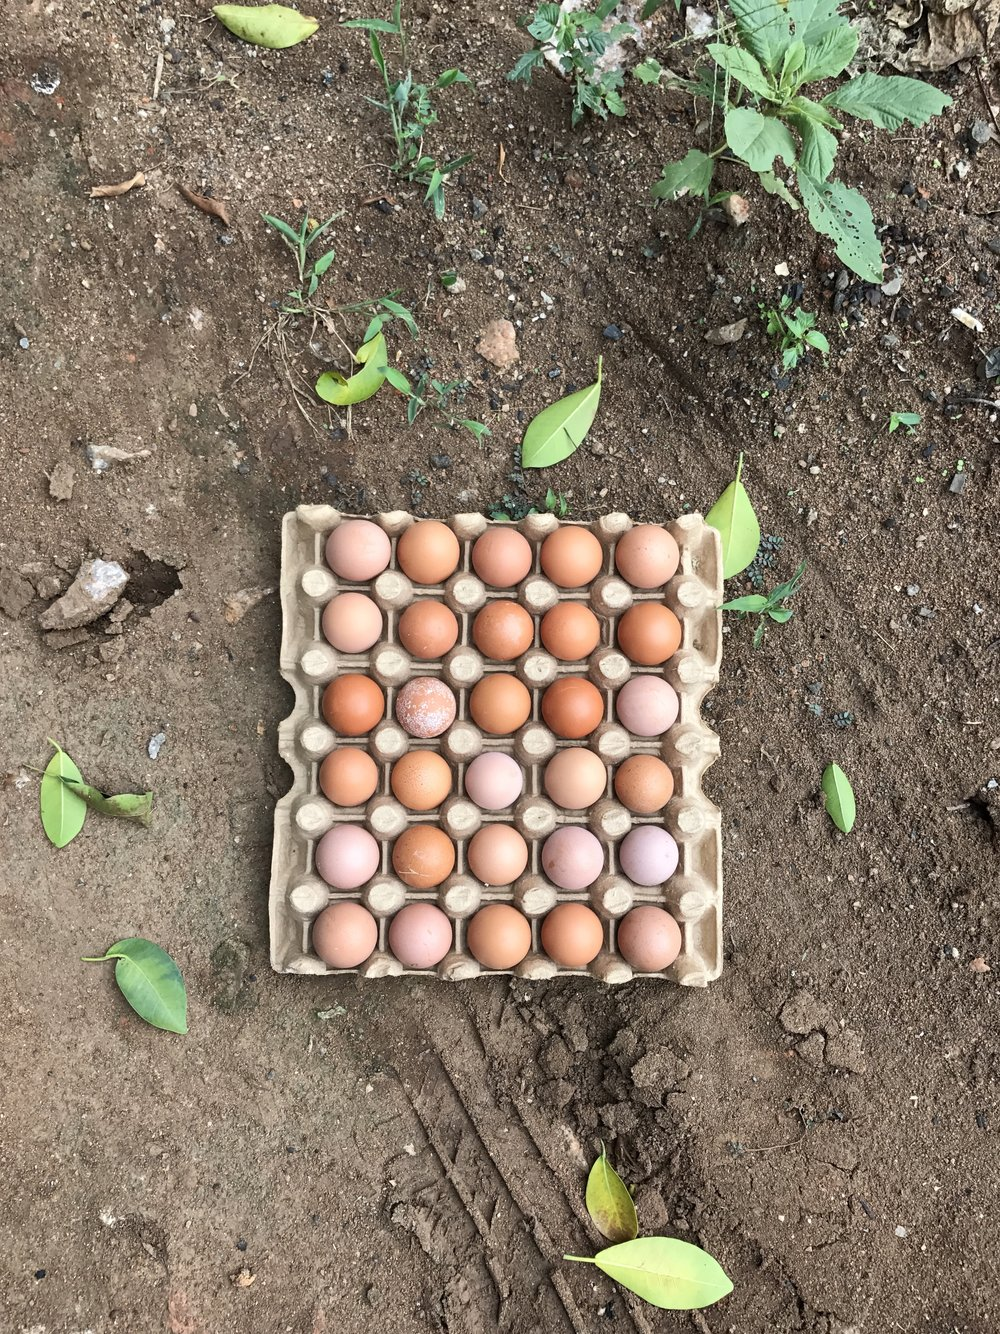 £19 = 25 Baby Chicks - The more chickens we have, the more healthy eggs we have to feed our Cherish children, our students, our staff, and to sell locally as a form of sustainability.